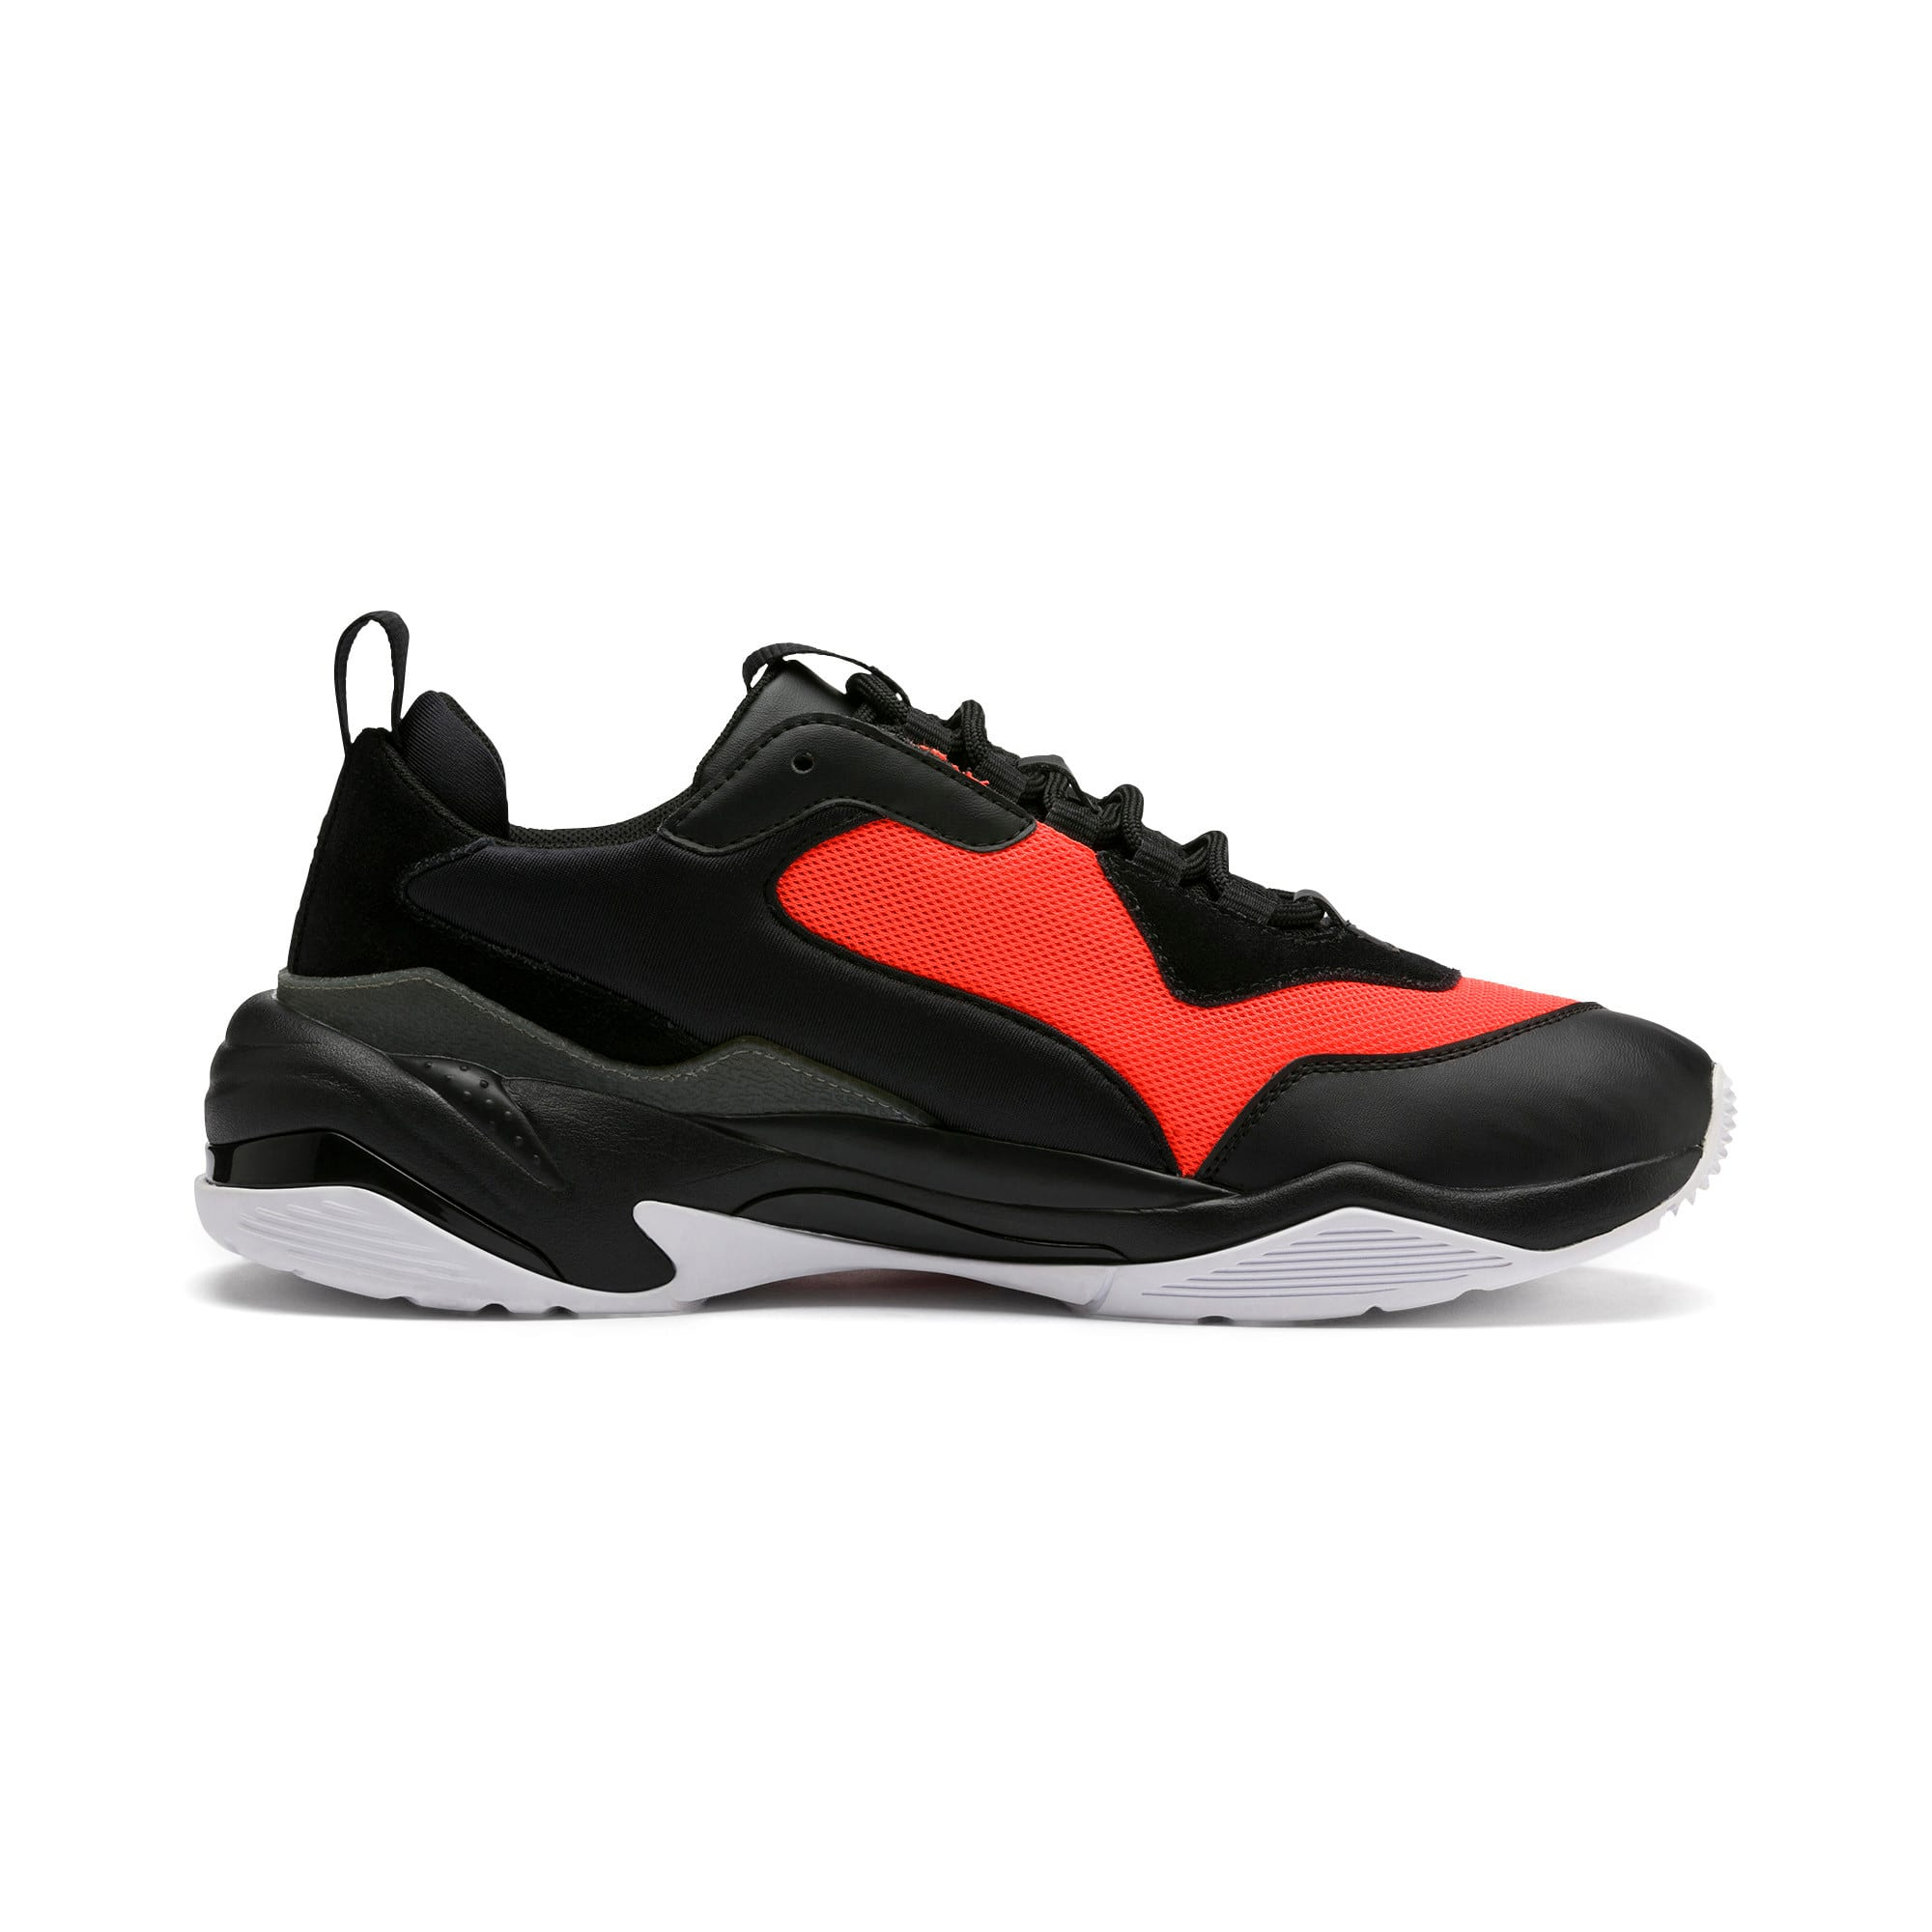 Thumbnail 6 of Thunder Fashion 2.0 Trainers, Puma Black-Nrgy Red, medium